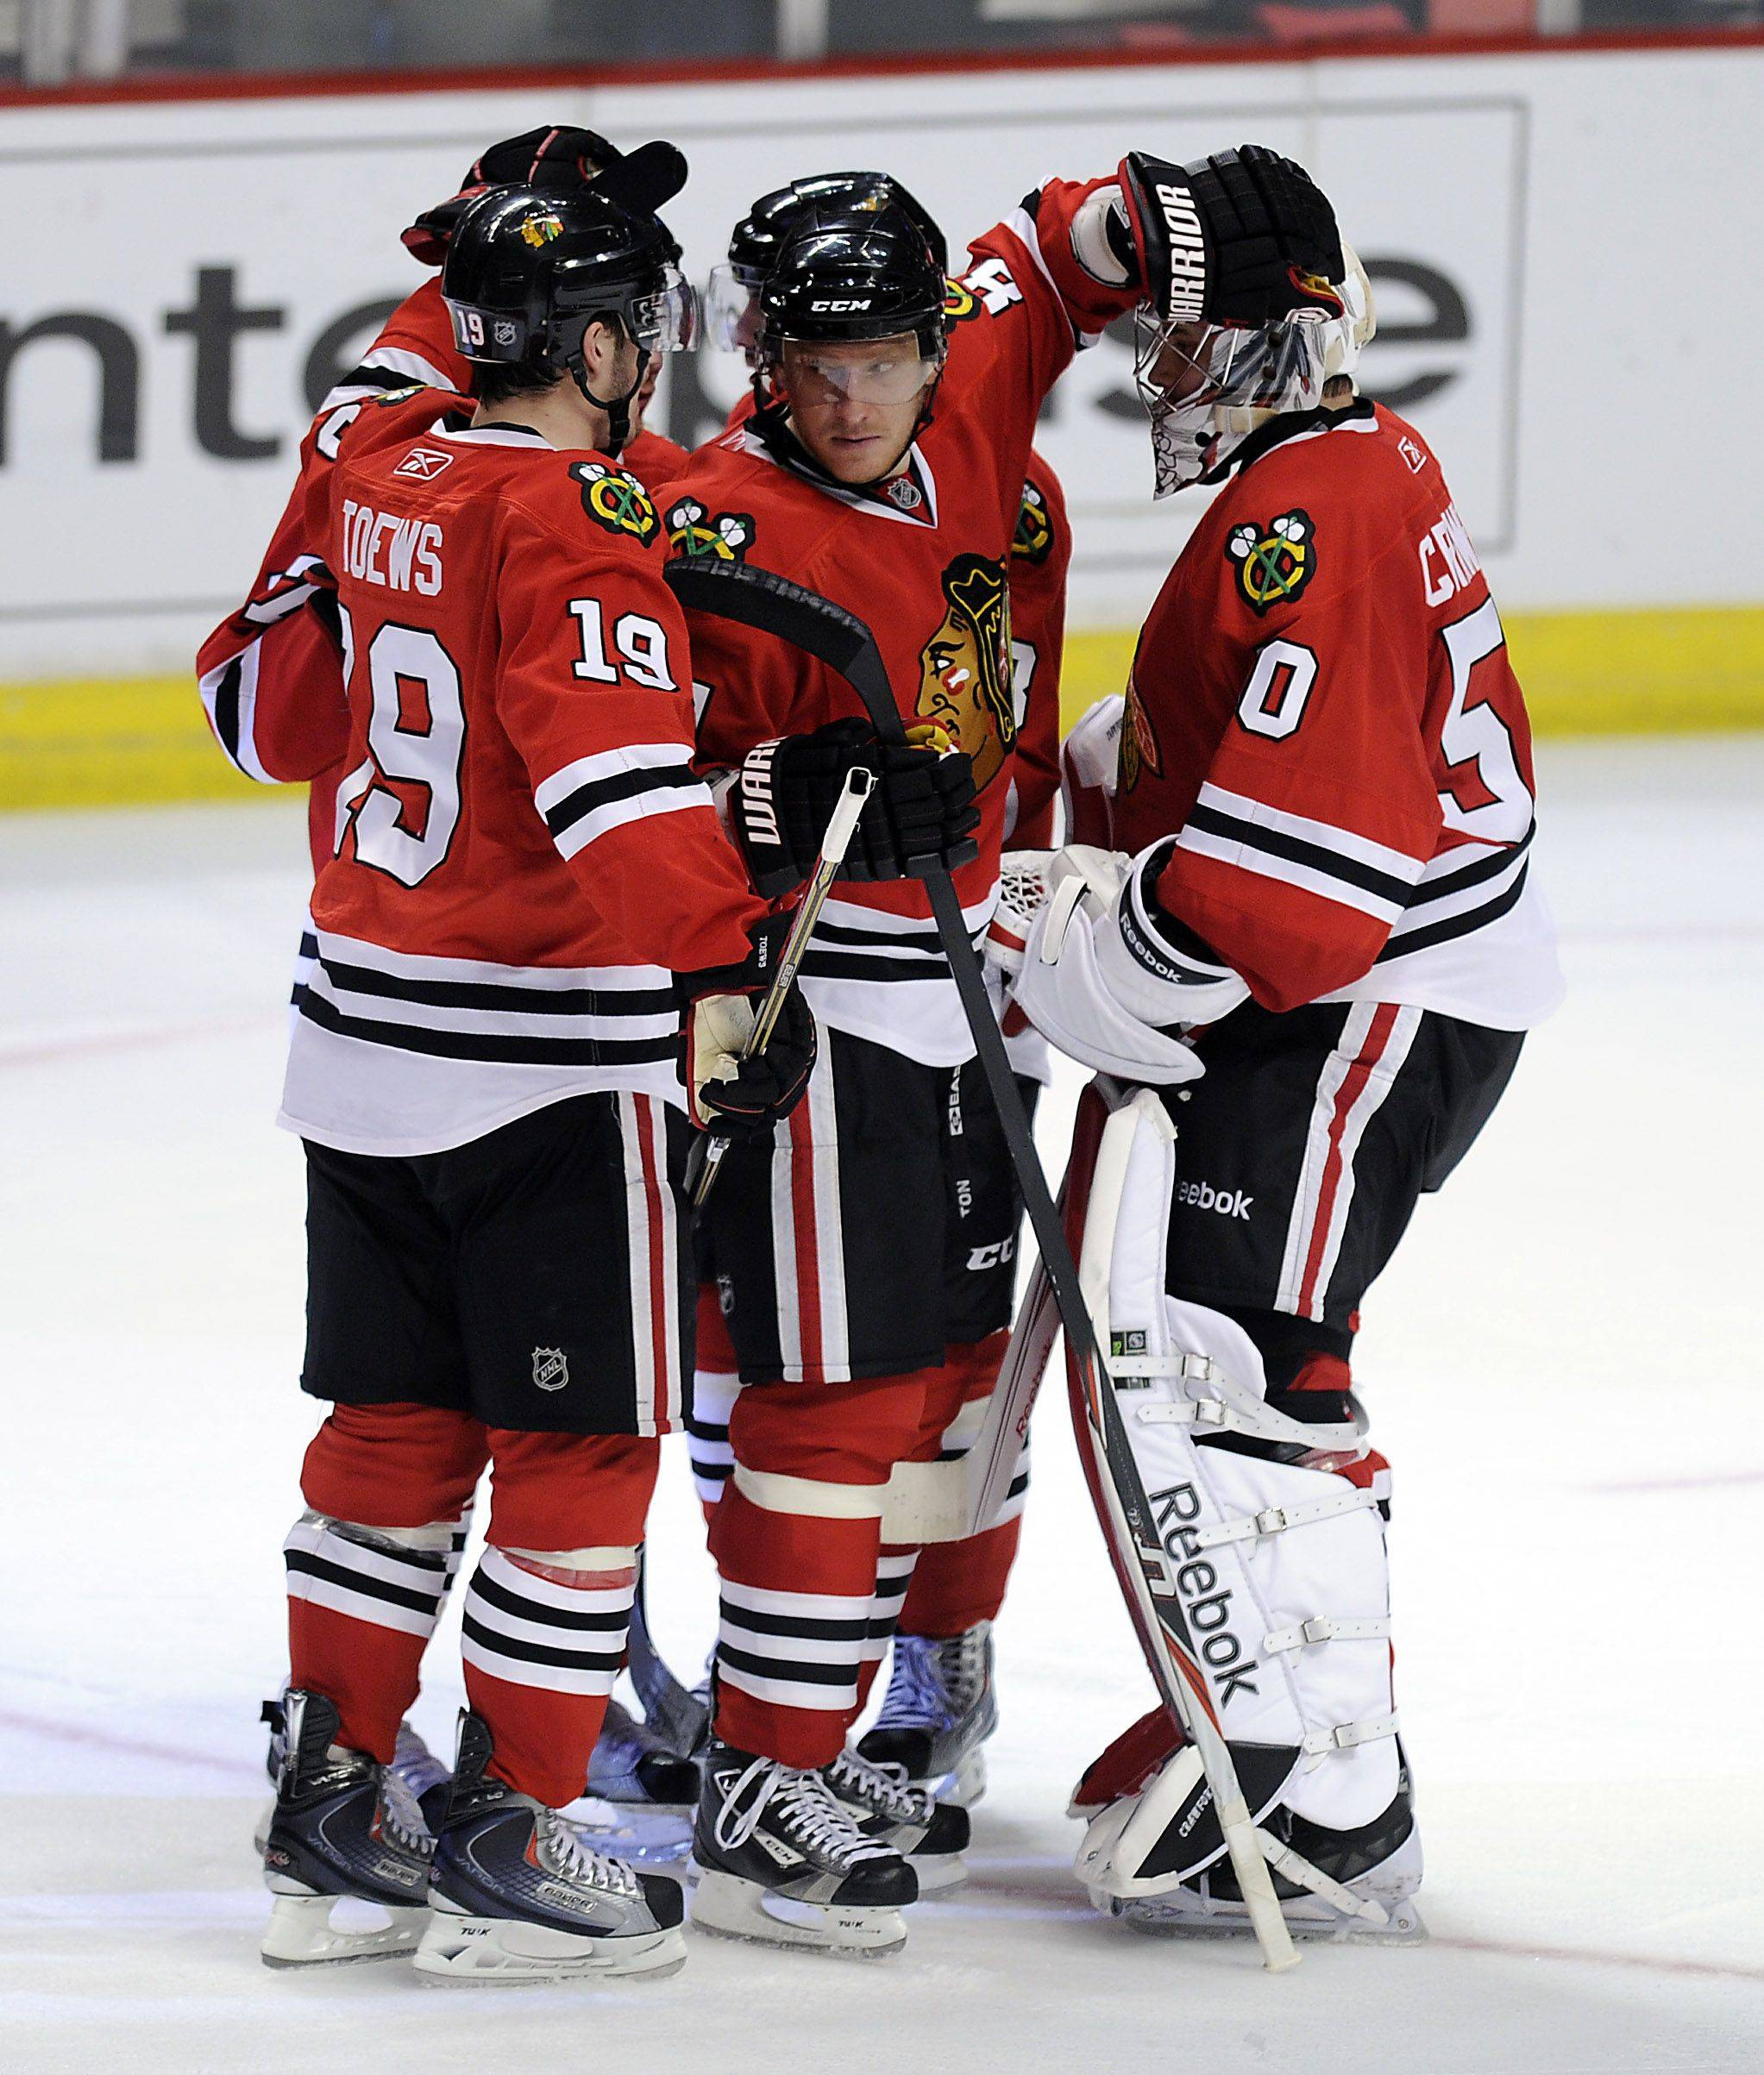 Marian Hossa celebrates with the rest of his teammates after the win.